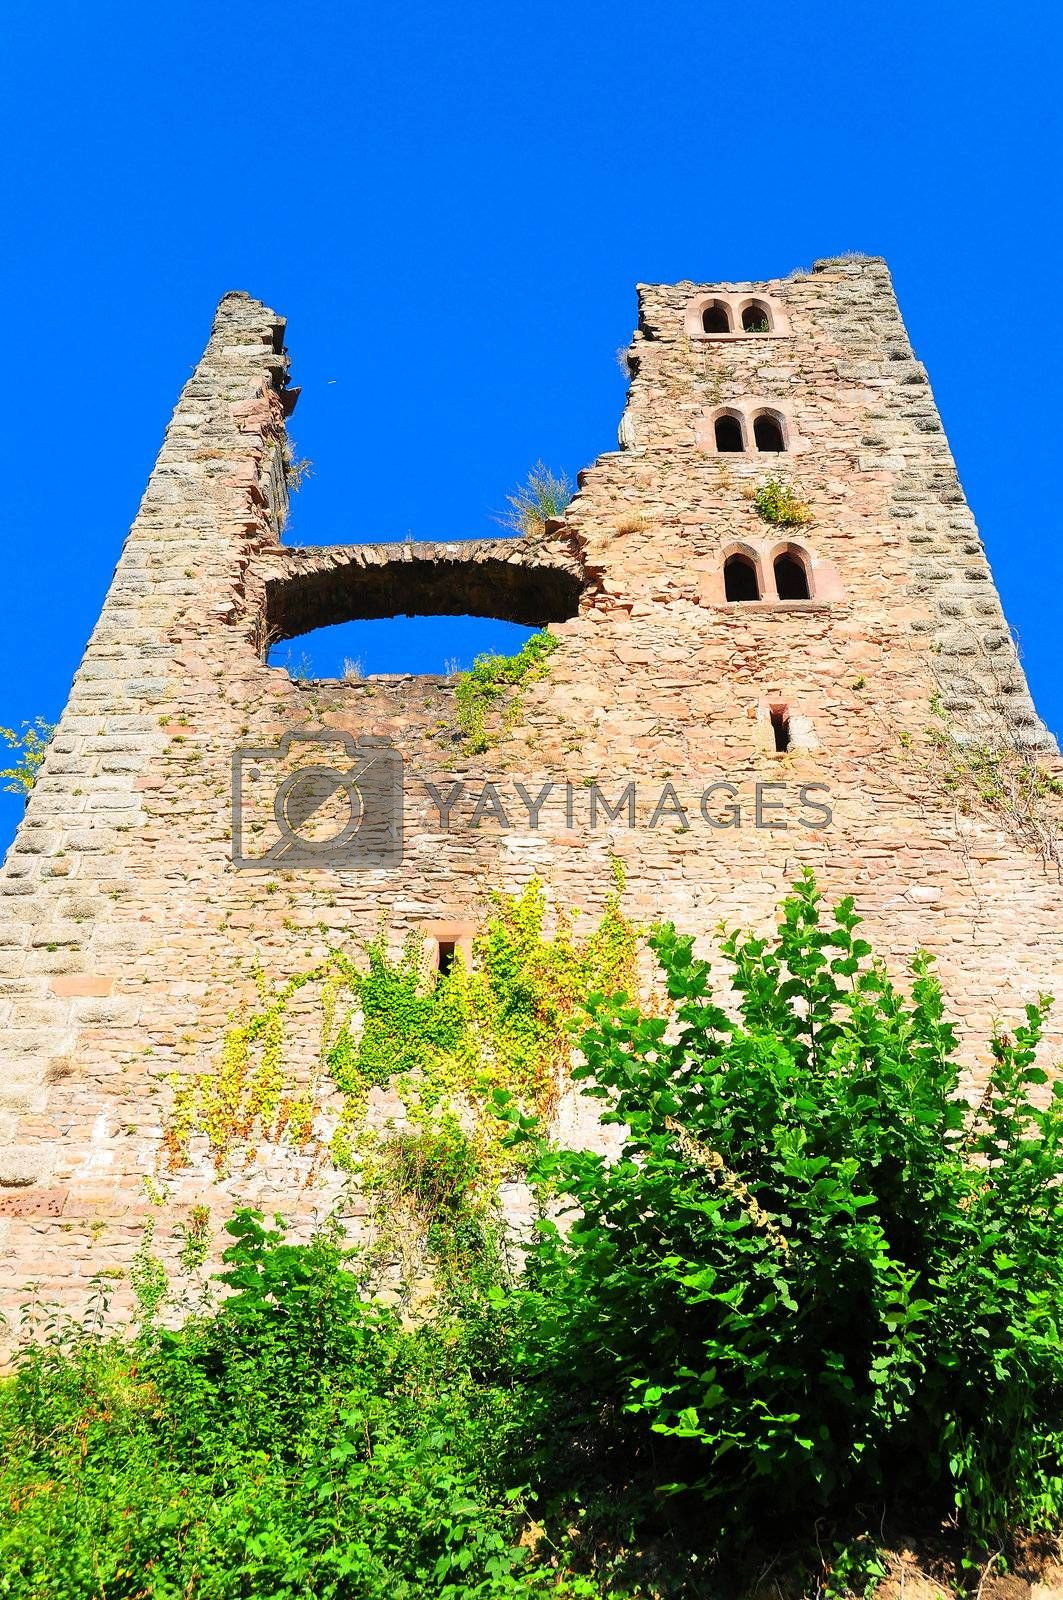 Royalty free image of Schauenburg castle by mpgphoto